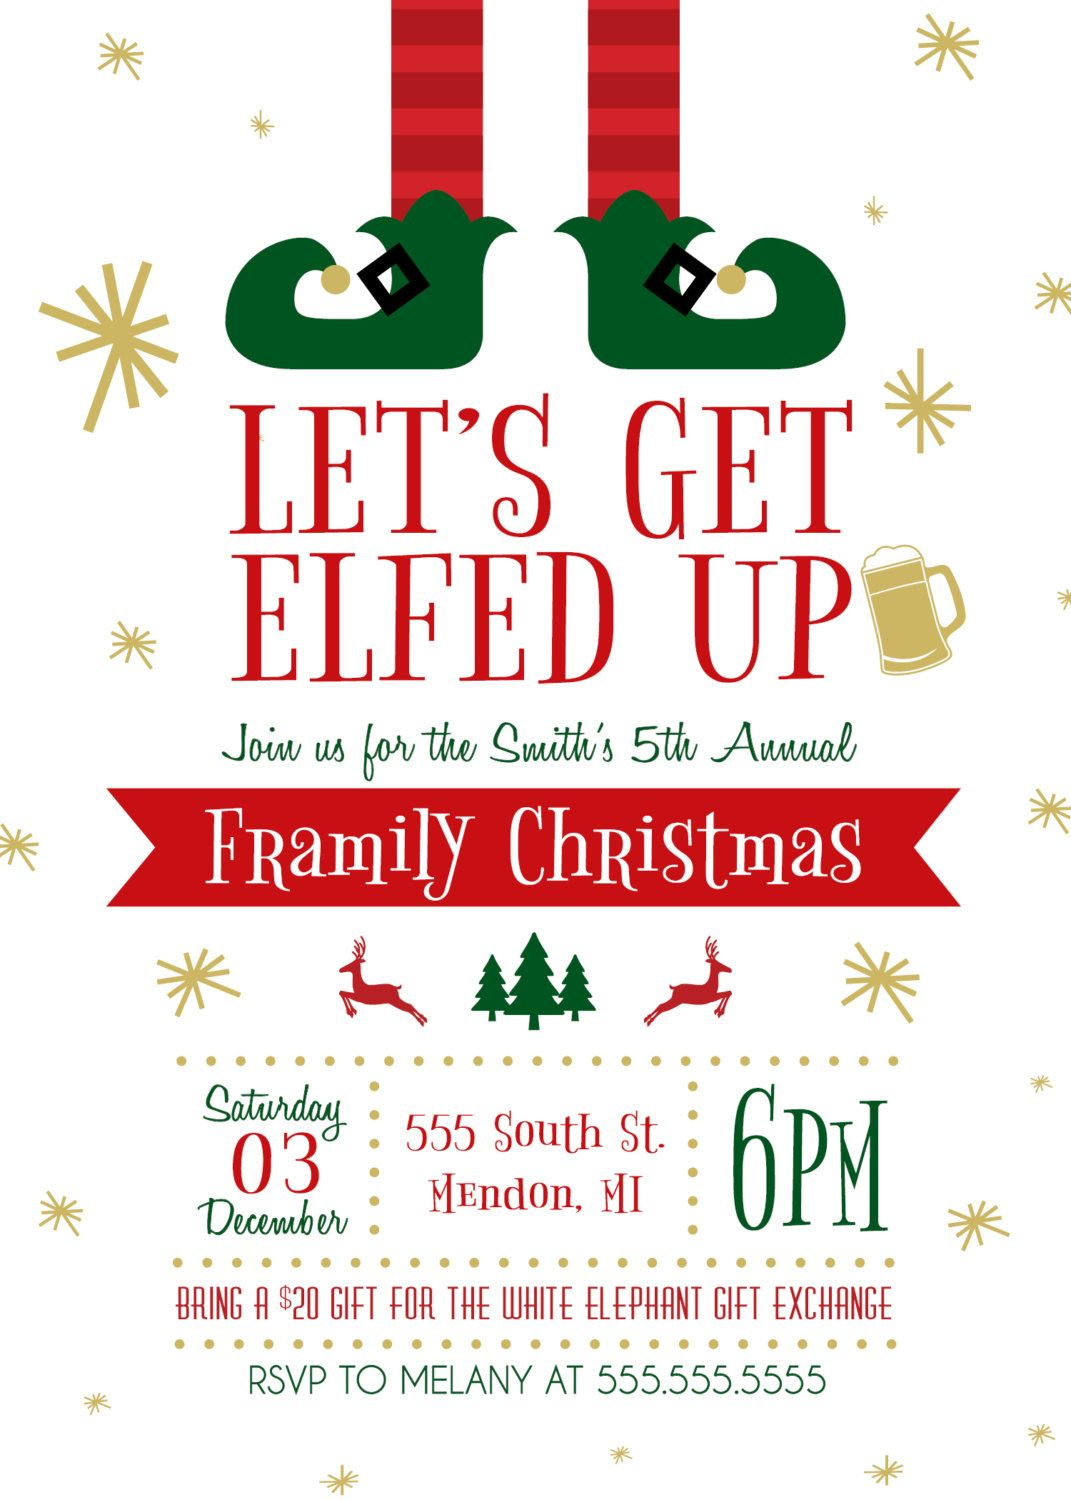 5 x 7 printable lets get elfed up christmas party invitation 5 x 7 printable lets get elfed up christmas party invitation framily christmas invitation funny holiday party christmas invitation monicamarmolfo Image collections